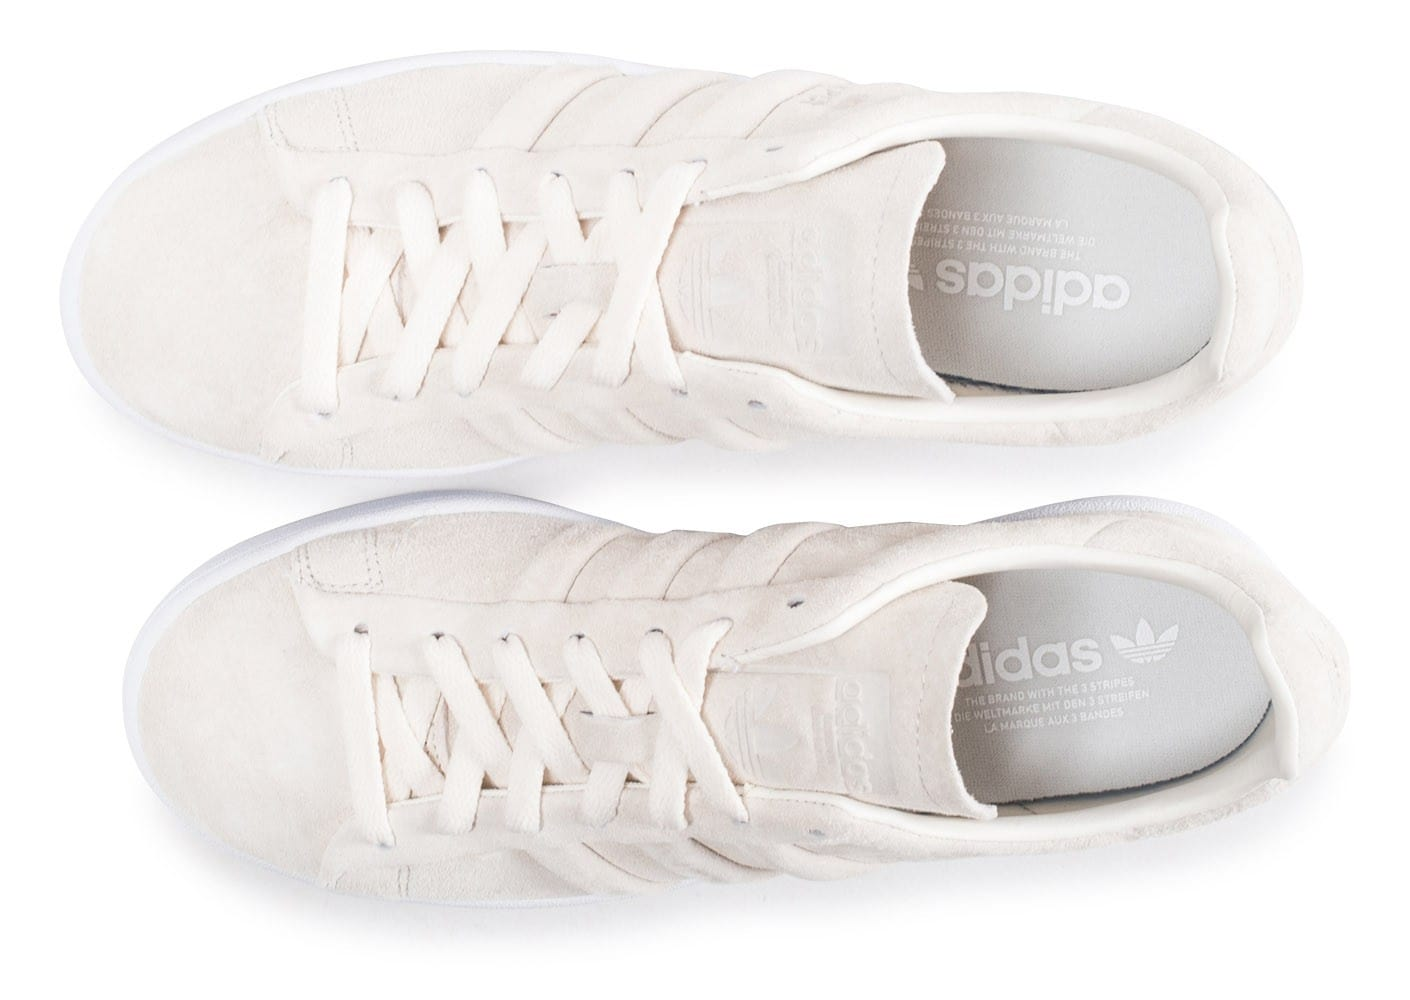 buy cheap a43ad e4005 ... Chaussures adidas Campus Stitch and Turn beige vue arrière ...